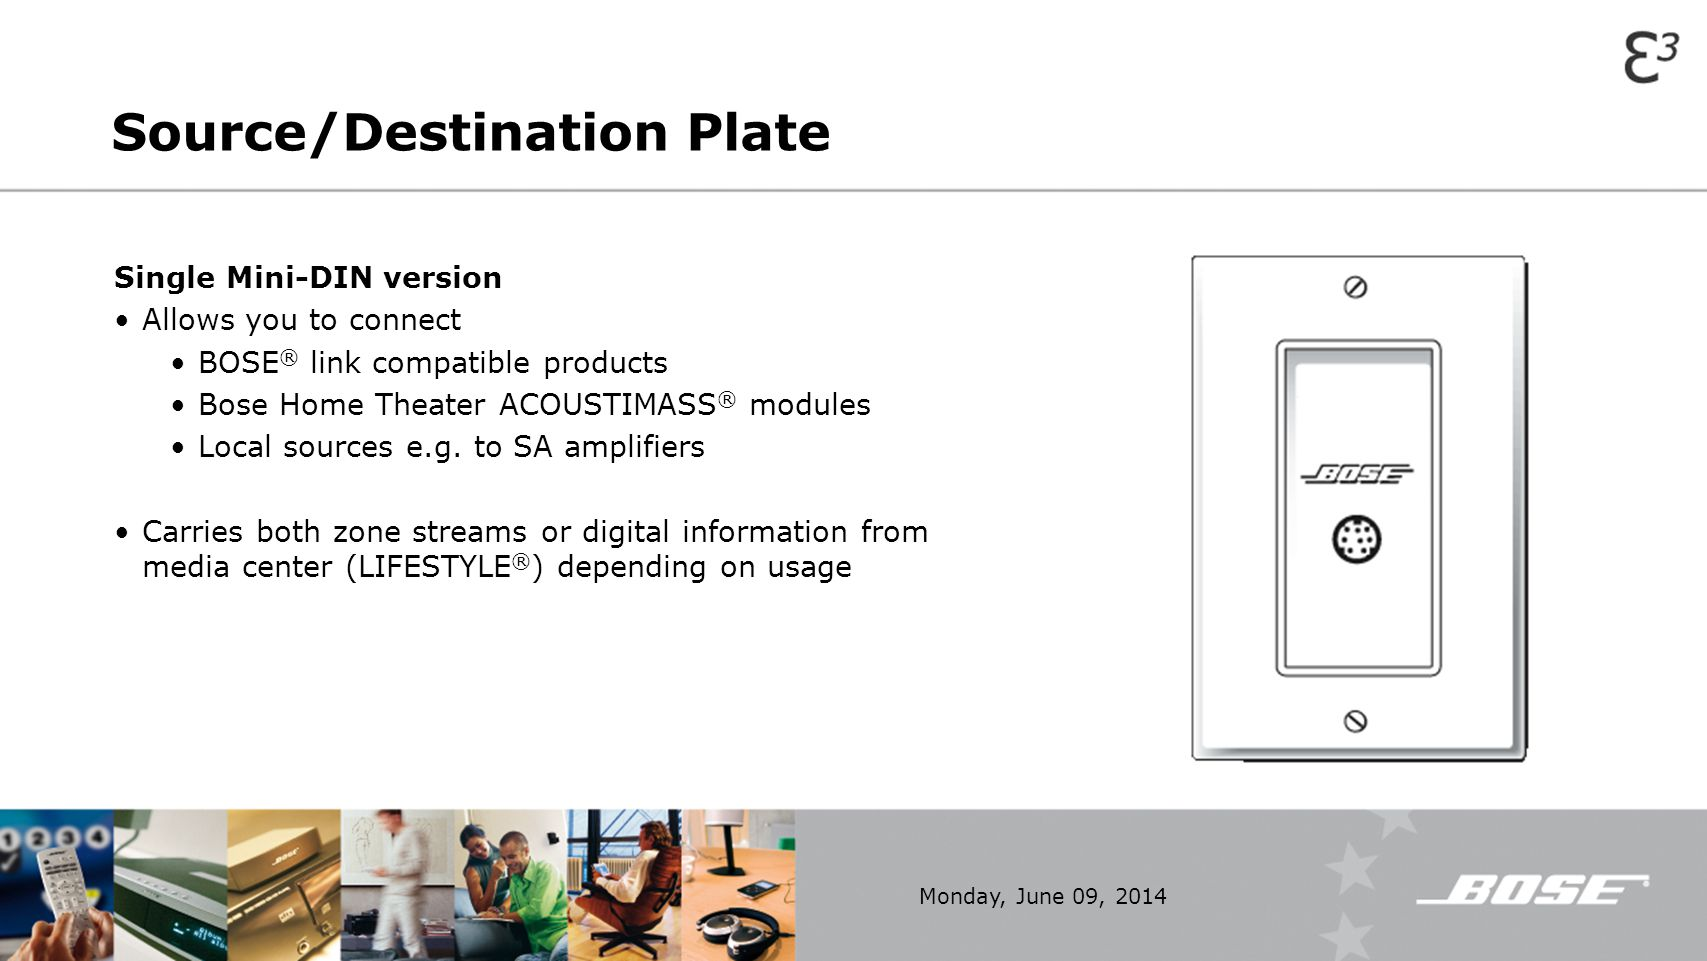 Source/Destination Plate